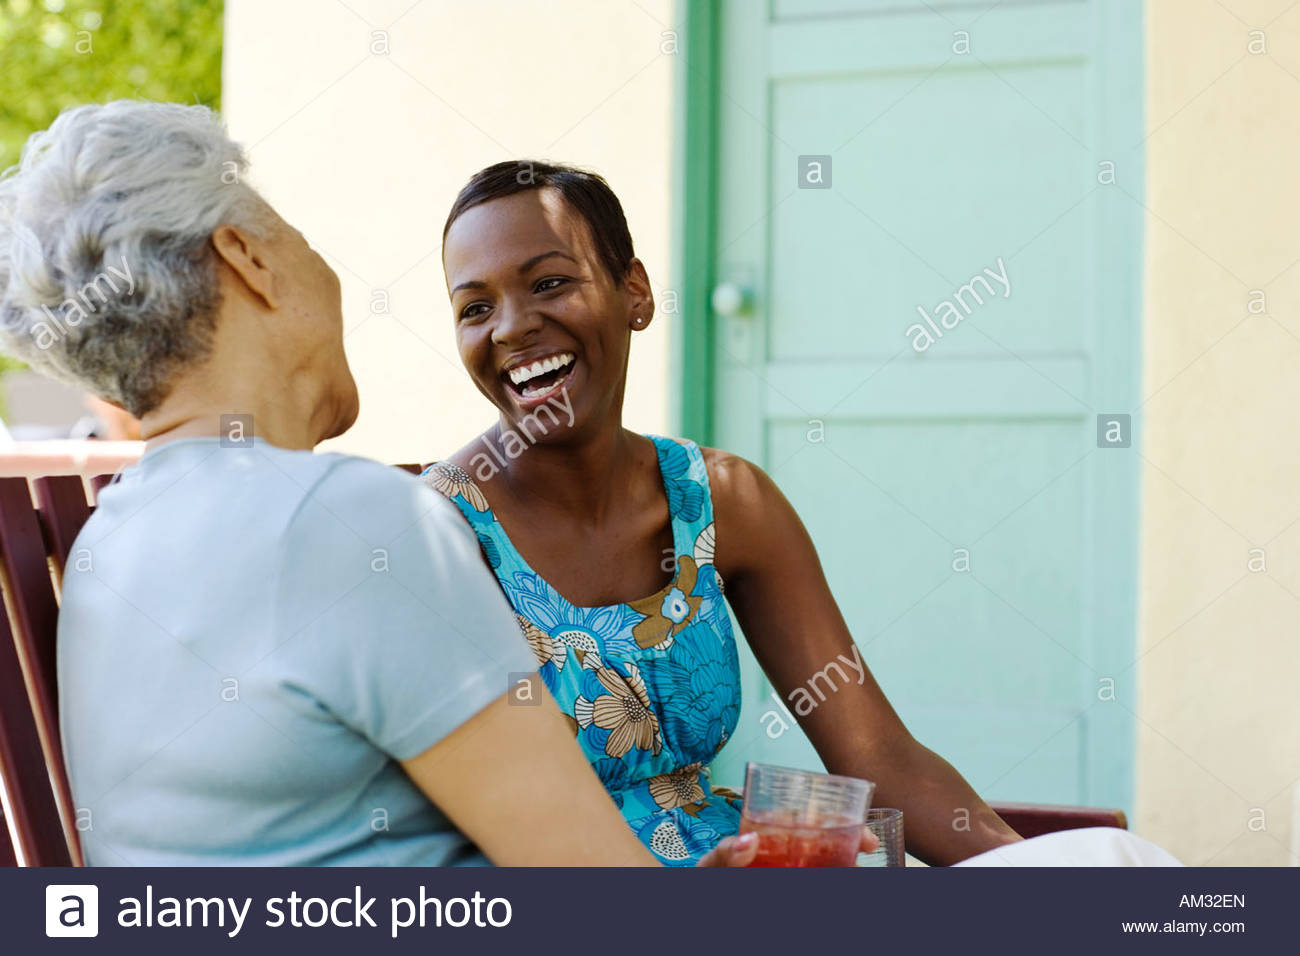 Two women sitting outdoors on wooden bench laughing Stock Photo